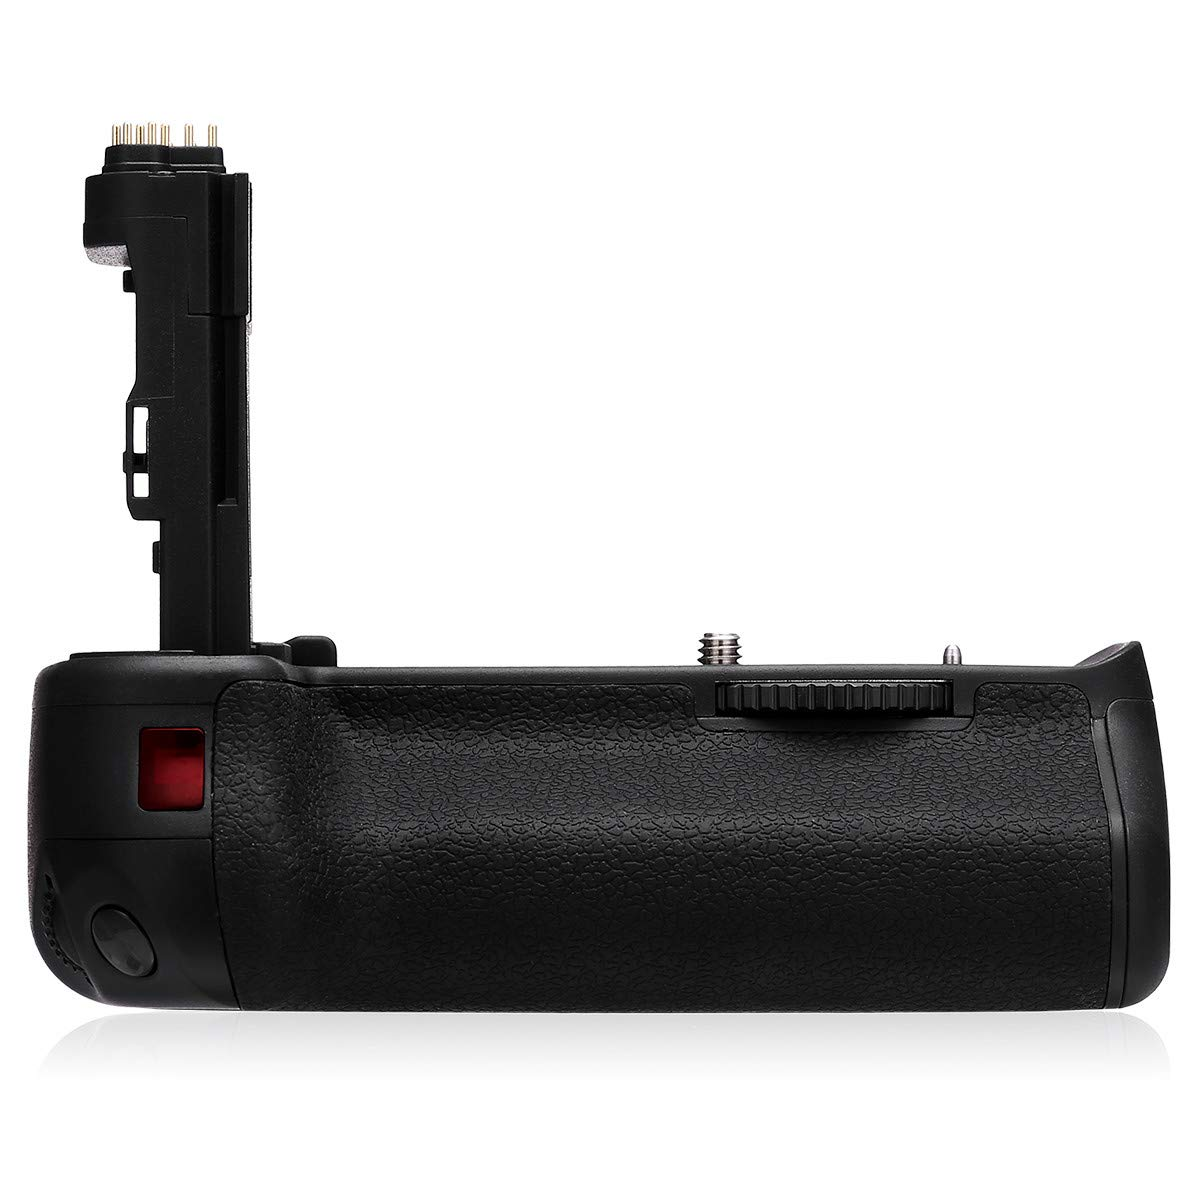 Powerextra BG-E13 Battery Grip for Canon EOS 6D DSLR Camera - Work with LP-E6/LP-E6N Batteries or 6 Pcs AA-Size Batteries by Powerextra